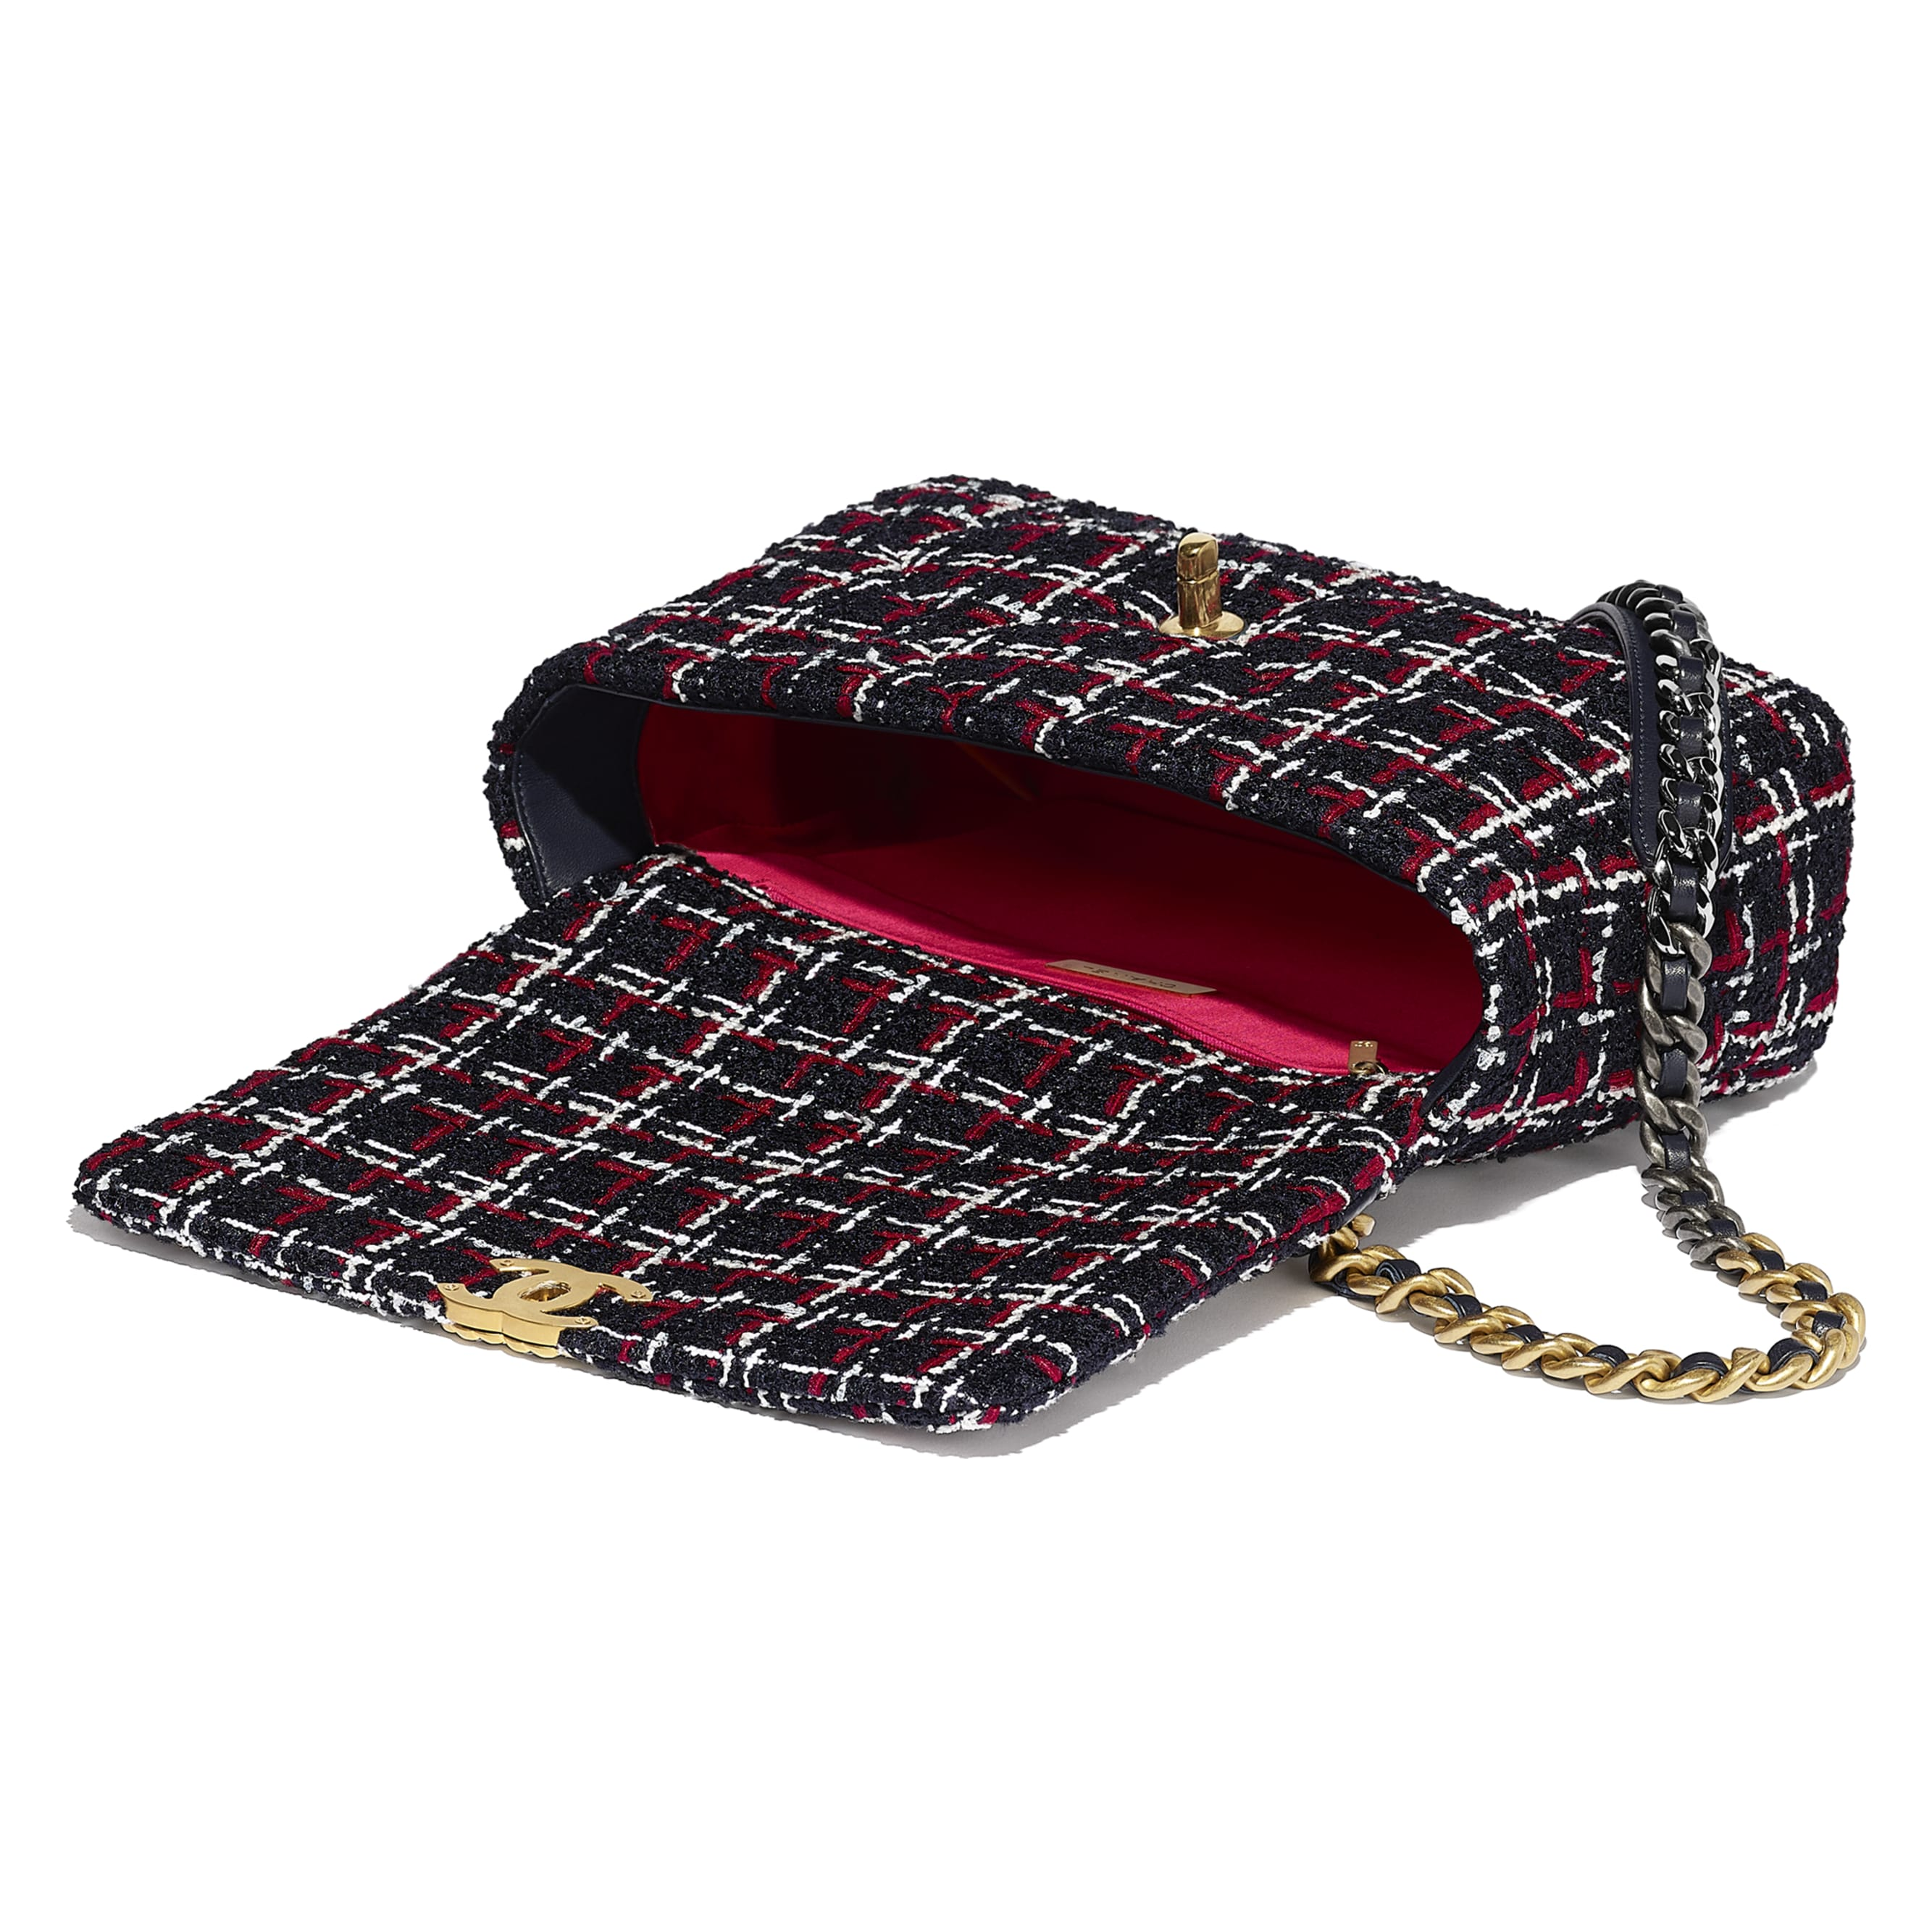 CHANEL 19 Large Flap Bag - Navy Blue, White & Red - Tweed, Gold-Tone, Silver-Tone & Ruthenium-Finish Metal - Other view - see standard sized version